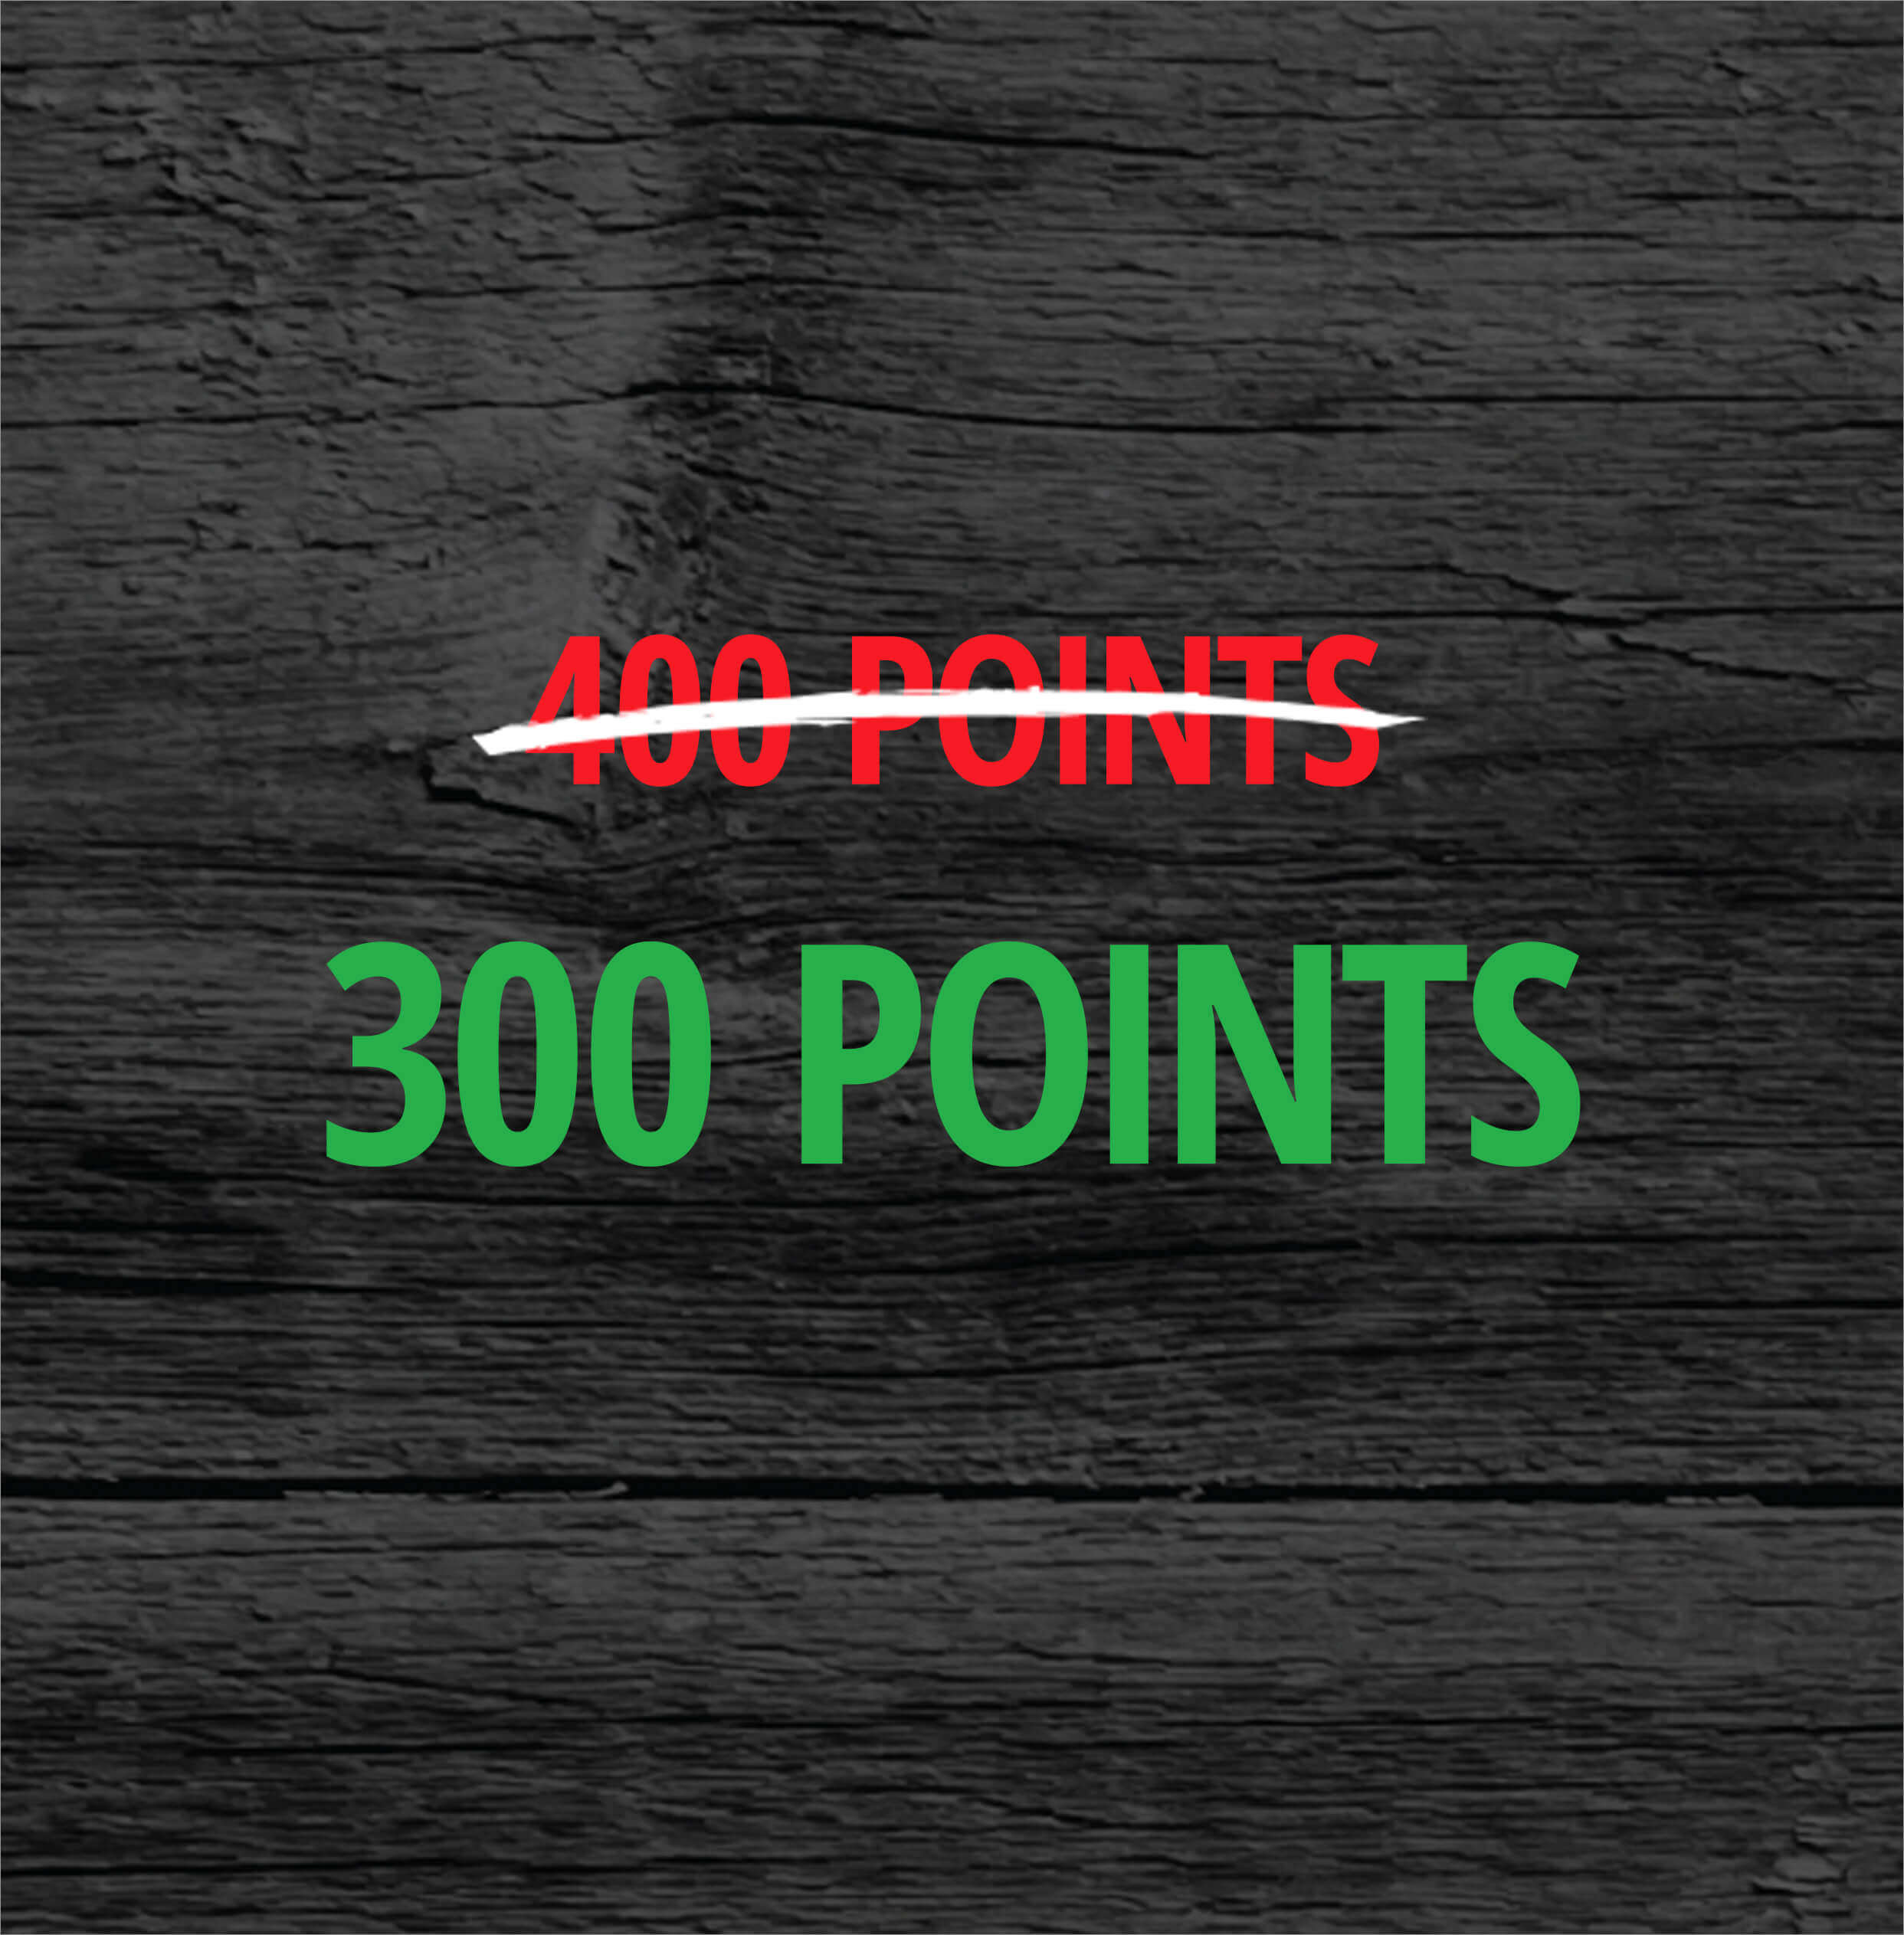 400 Points On Sale For 300 Points